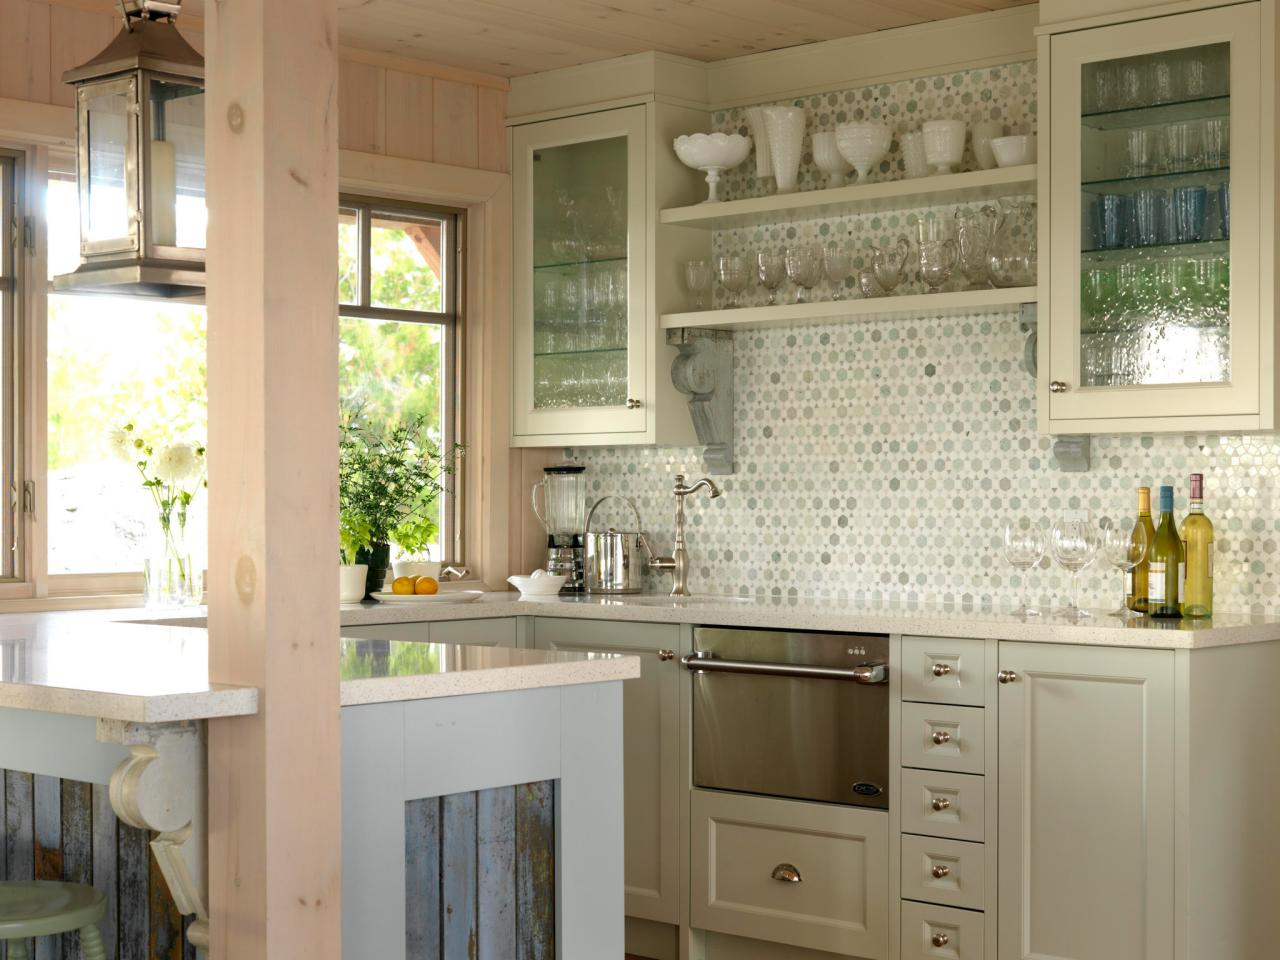 hssuh105_kitchen-with-glass-face-cabinets_4x3-jpg-rend-hgtvcom-1280-960